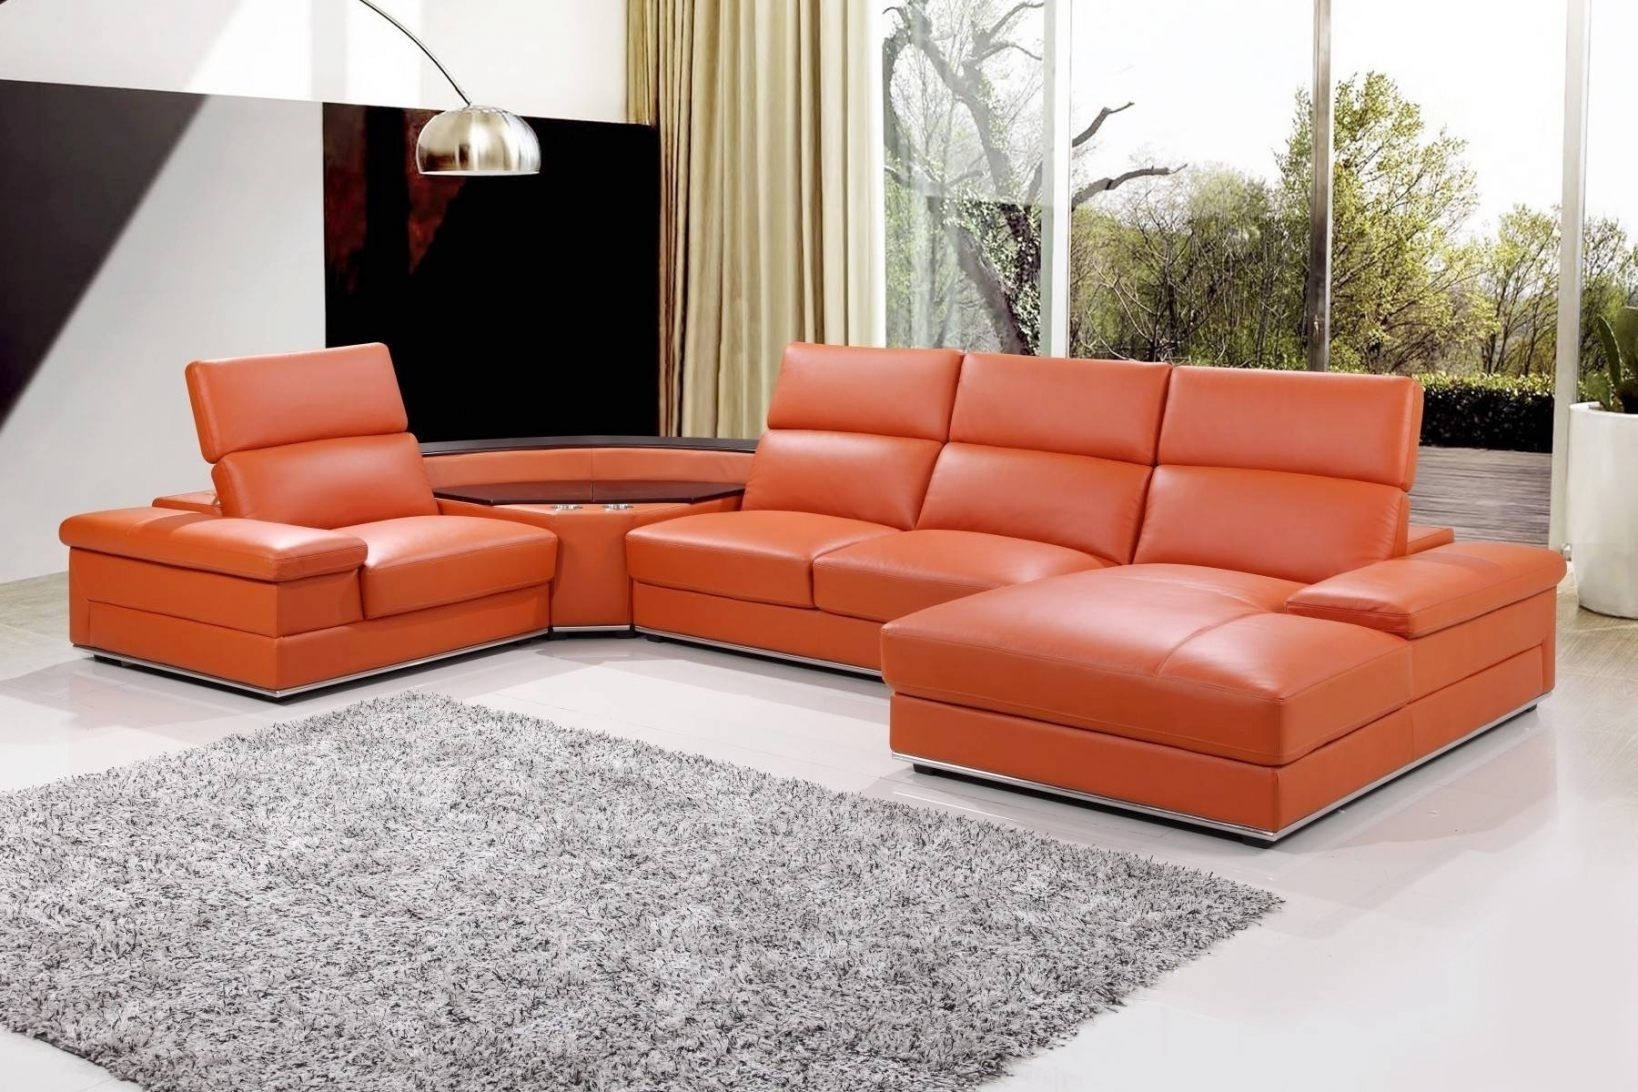 10 Best Collection Of Eco Friendly Sectional Sofas Sofa Ideas